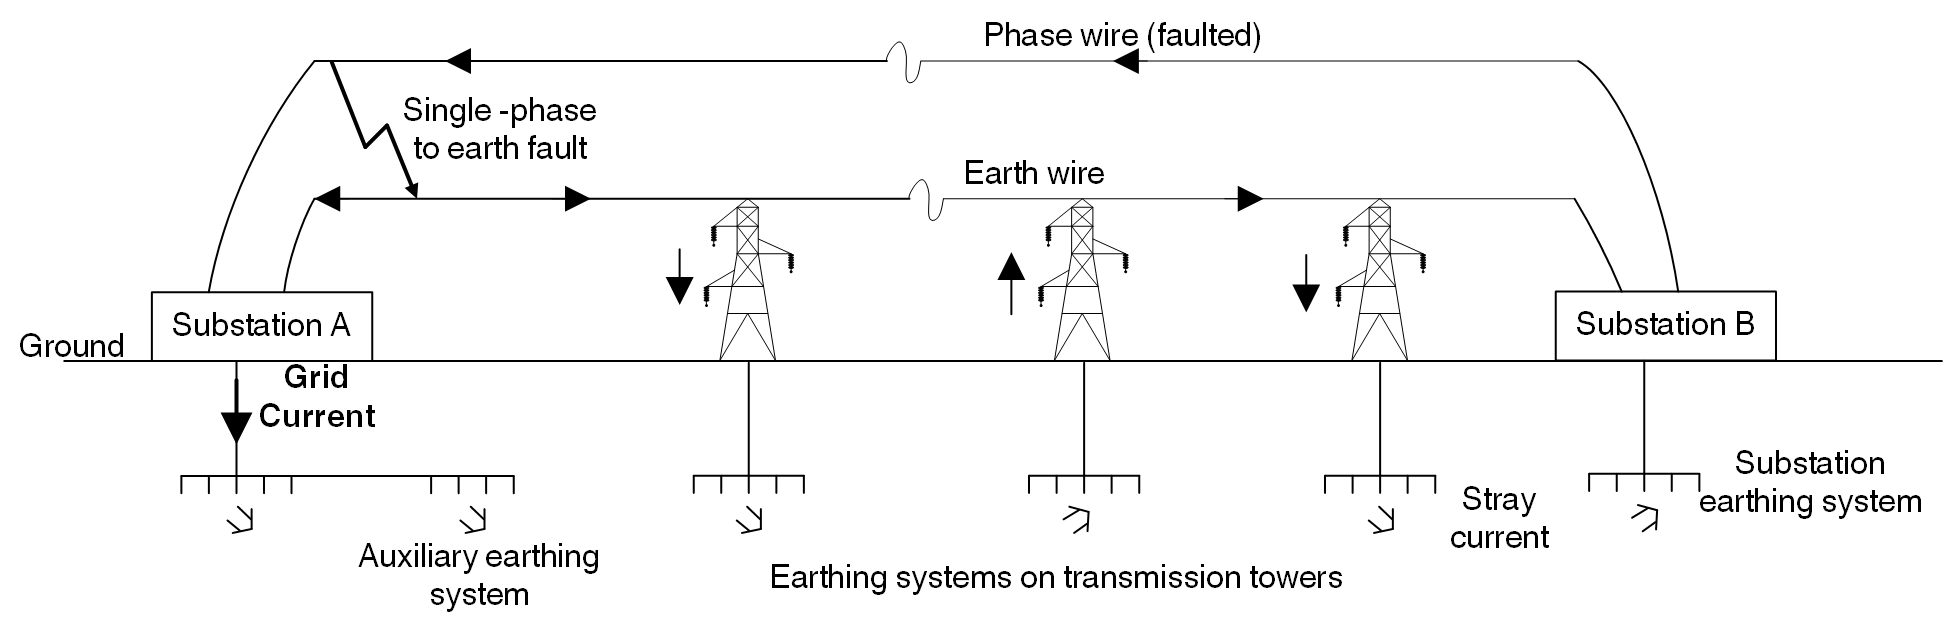 Figure 3 – Schematic diagram of a fault near distribution substation